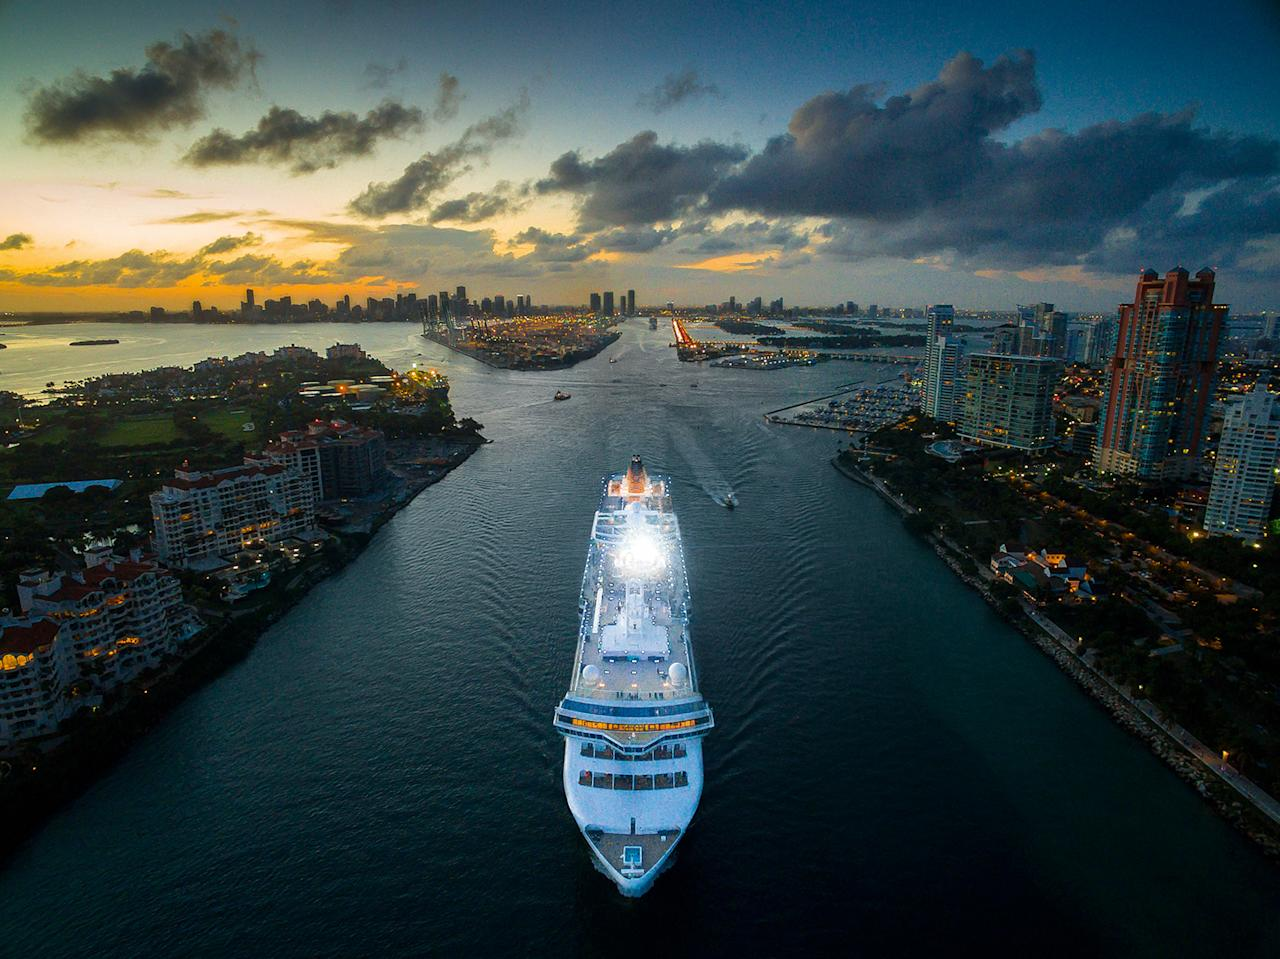 <p>Cruise ship in Miami, by iMaerial_com, taken at 131 feet. (Caters News) </p>